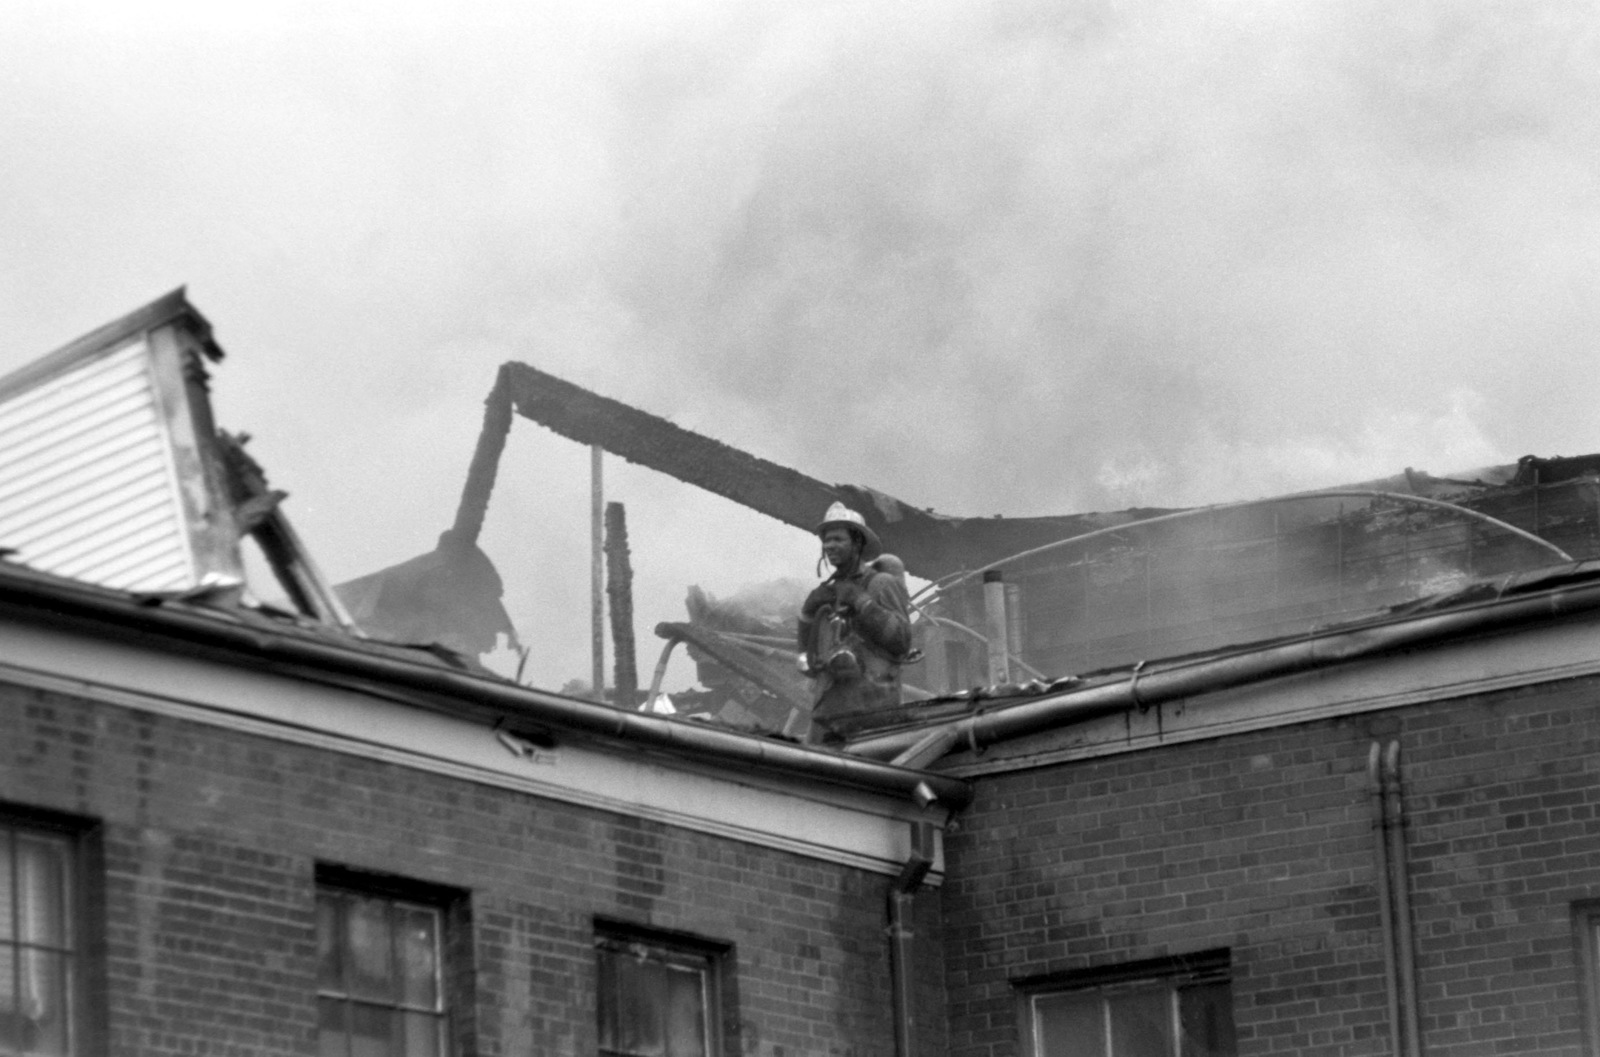 A fire fighter stands on the fire gutted roof of Enterprise Hall at the Anacostia Naval Station, as the District of Columbia and Naval District Washington Fire Departments work to control and extinguish a fire